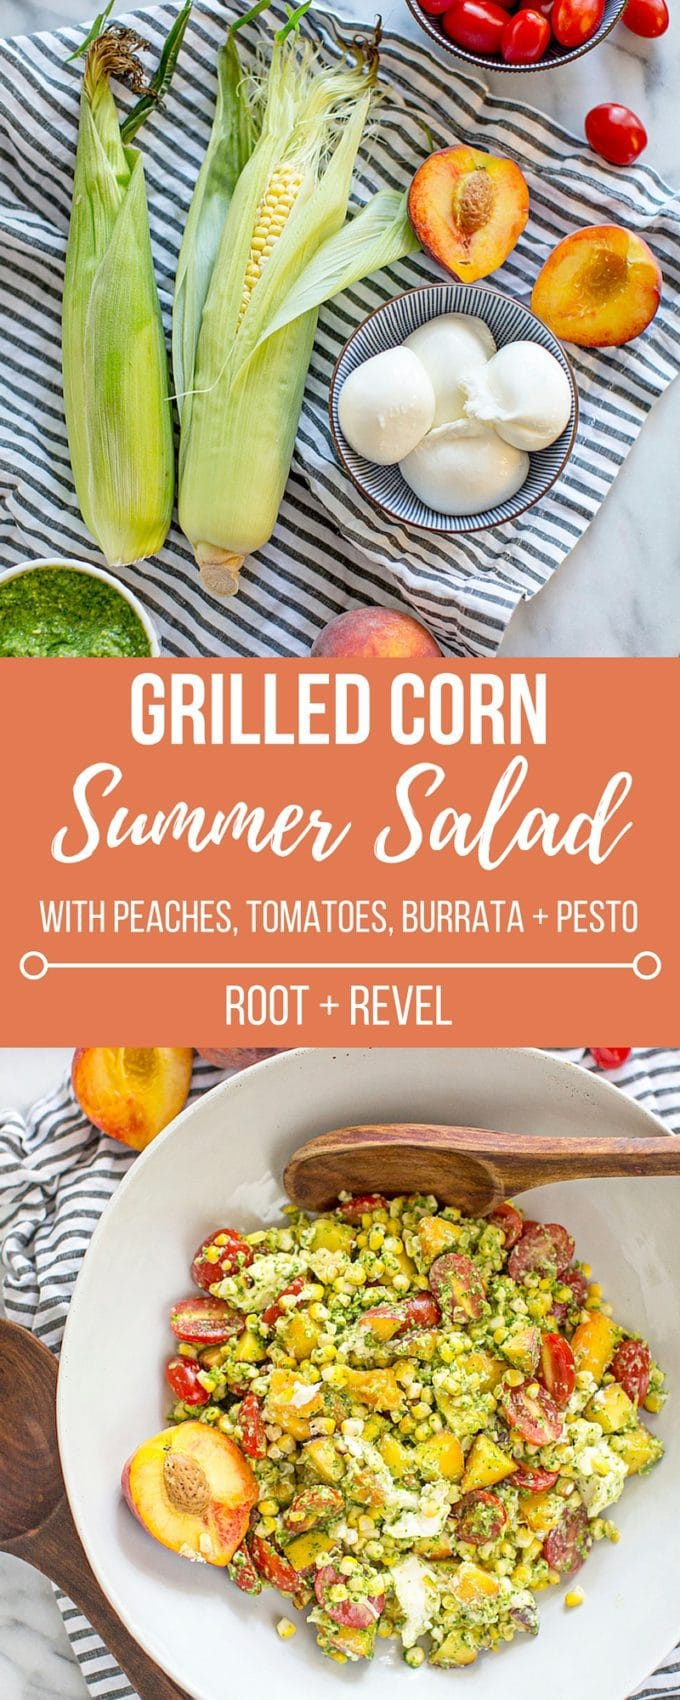 grilled-corn-summer-salad-2